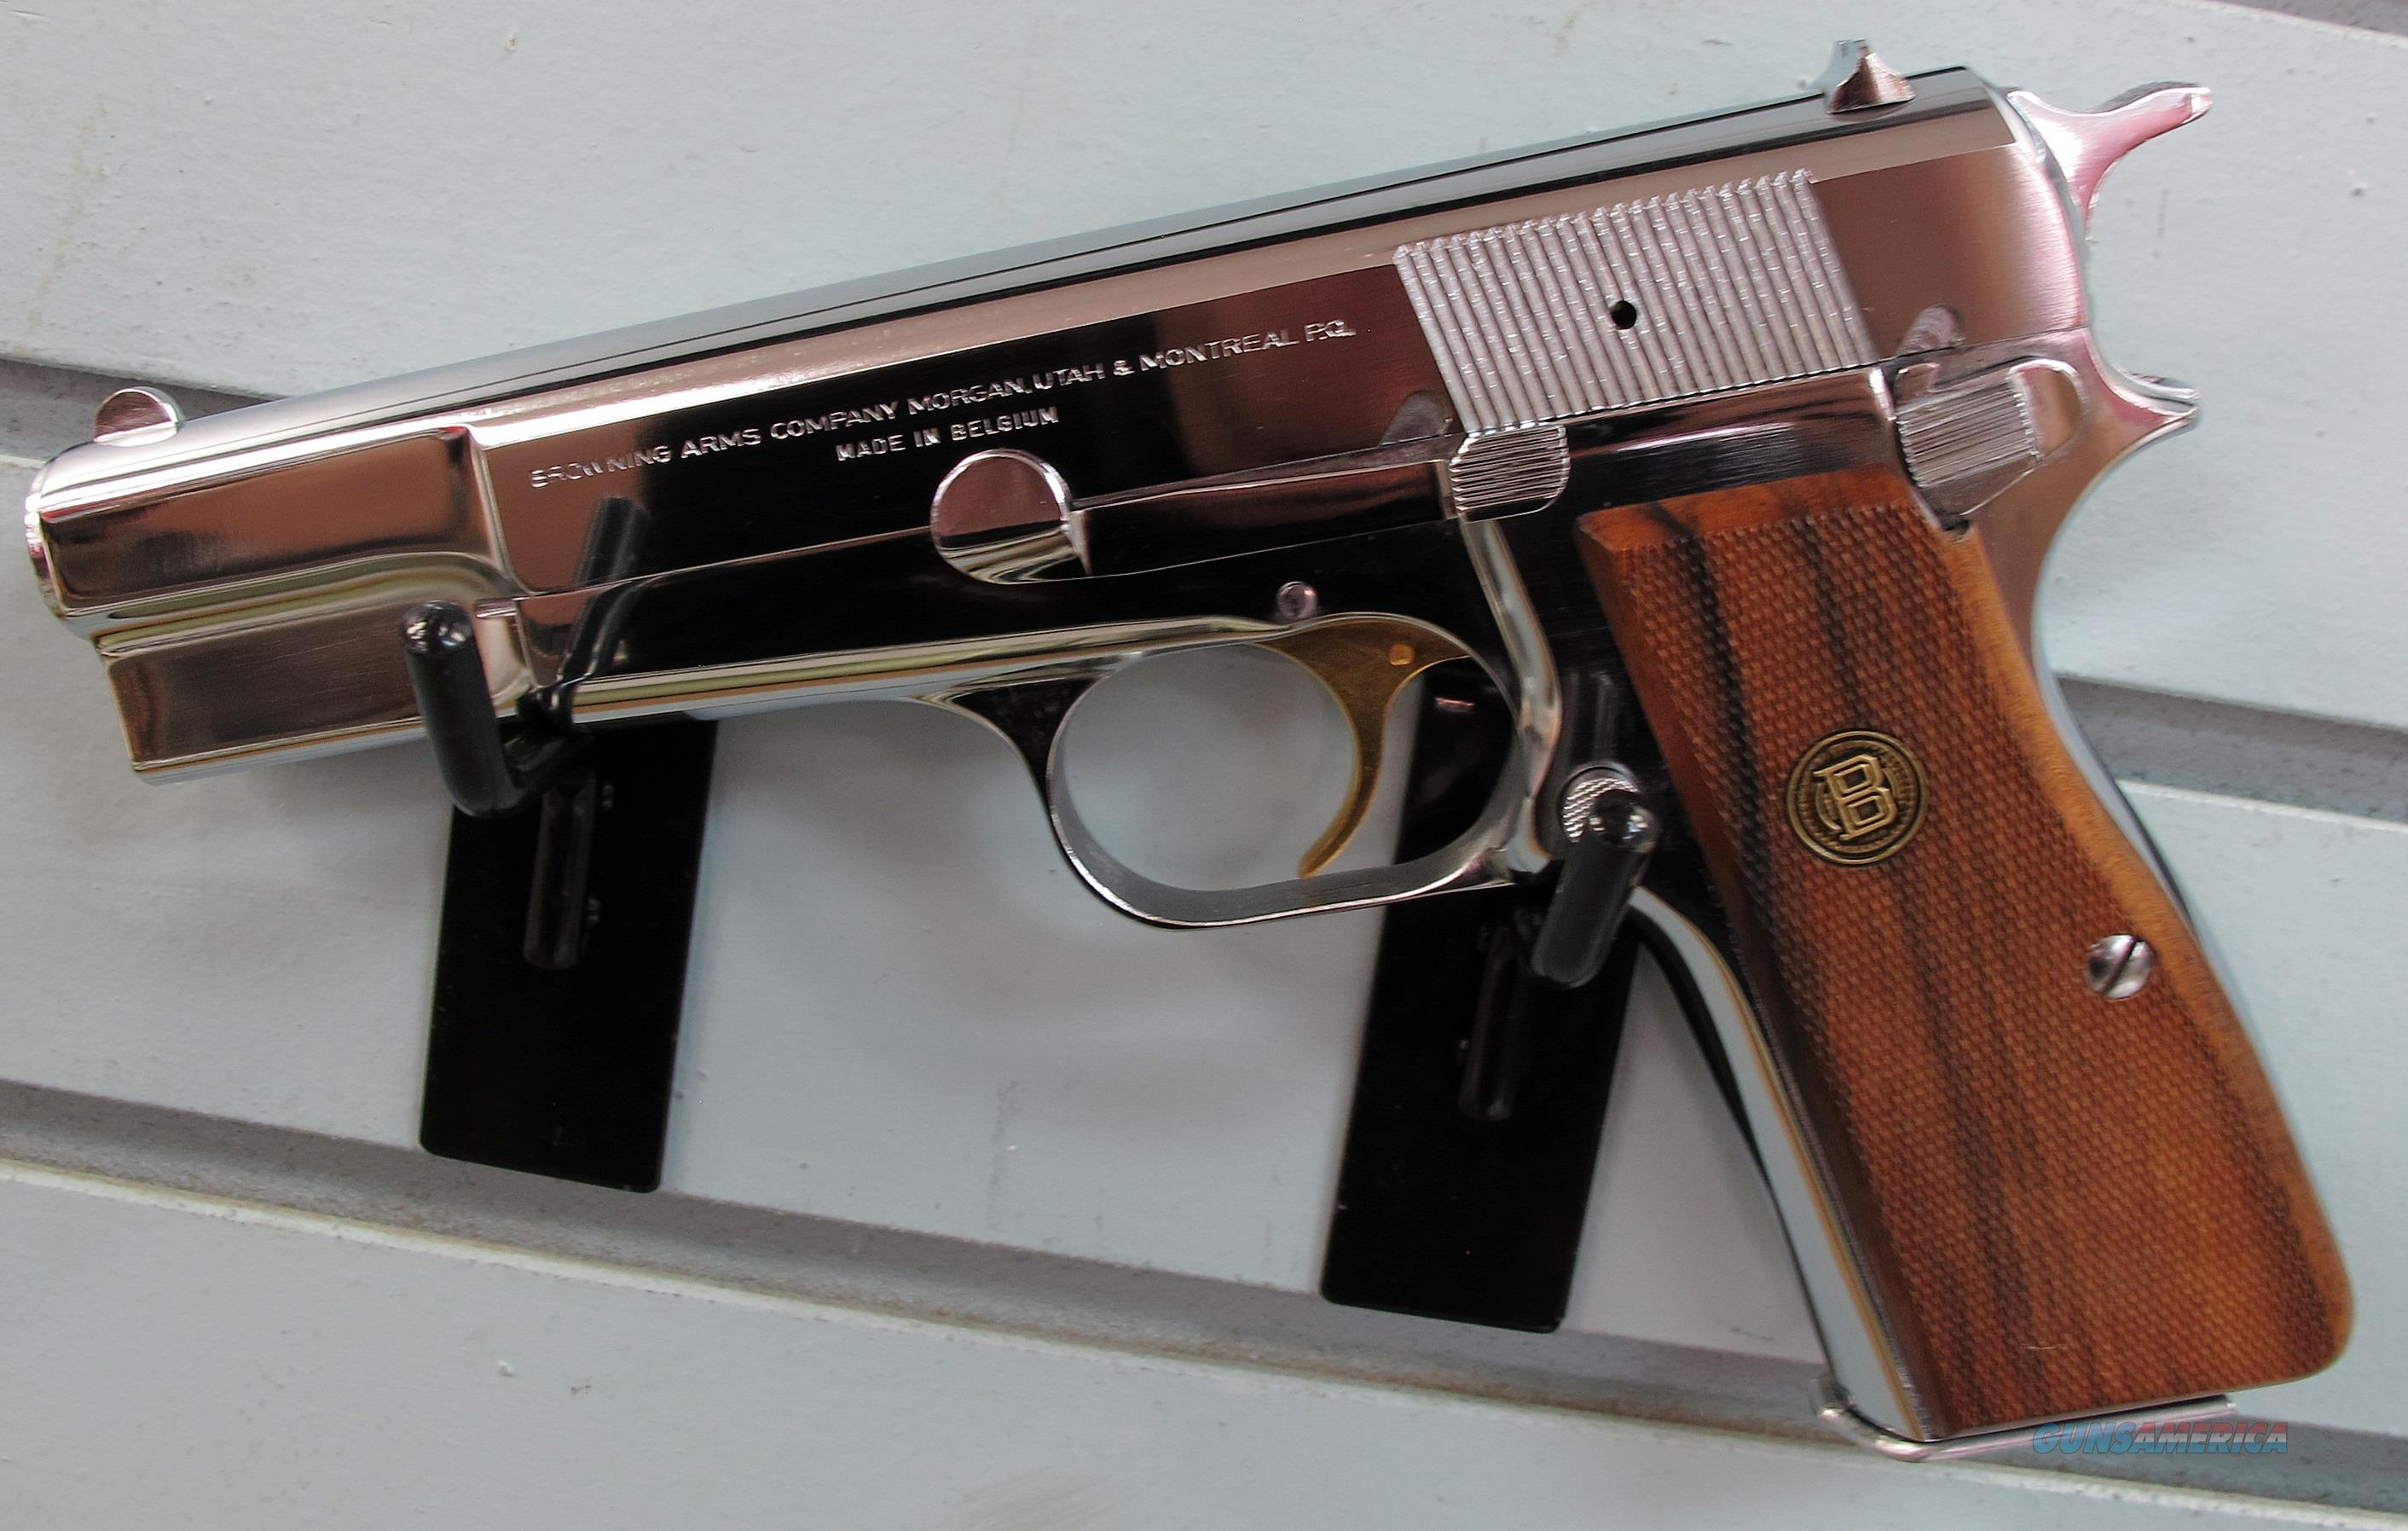 BROWNING CENETNNIAL HI POWER  Guns > Pistols > Browning Pistols > Hi Power